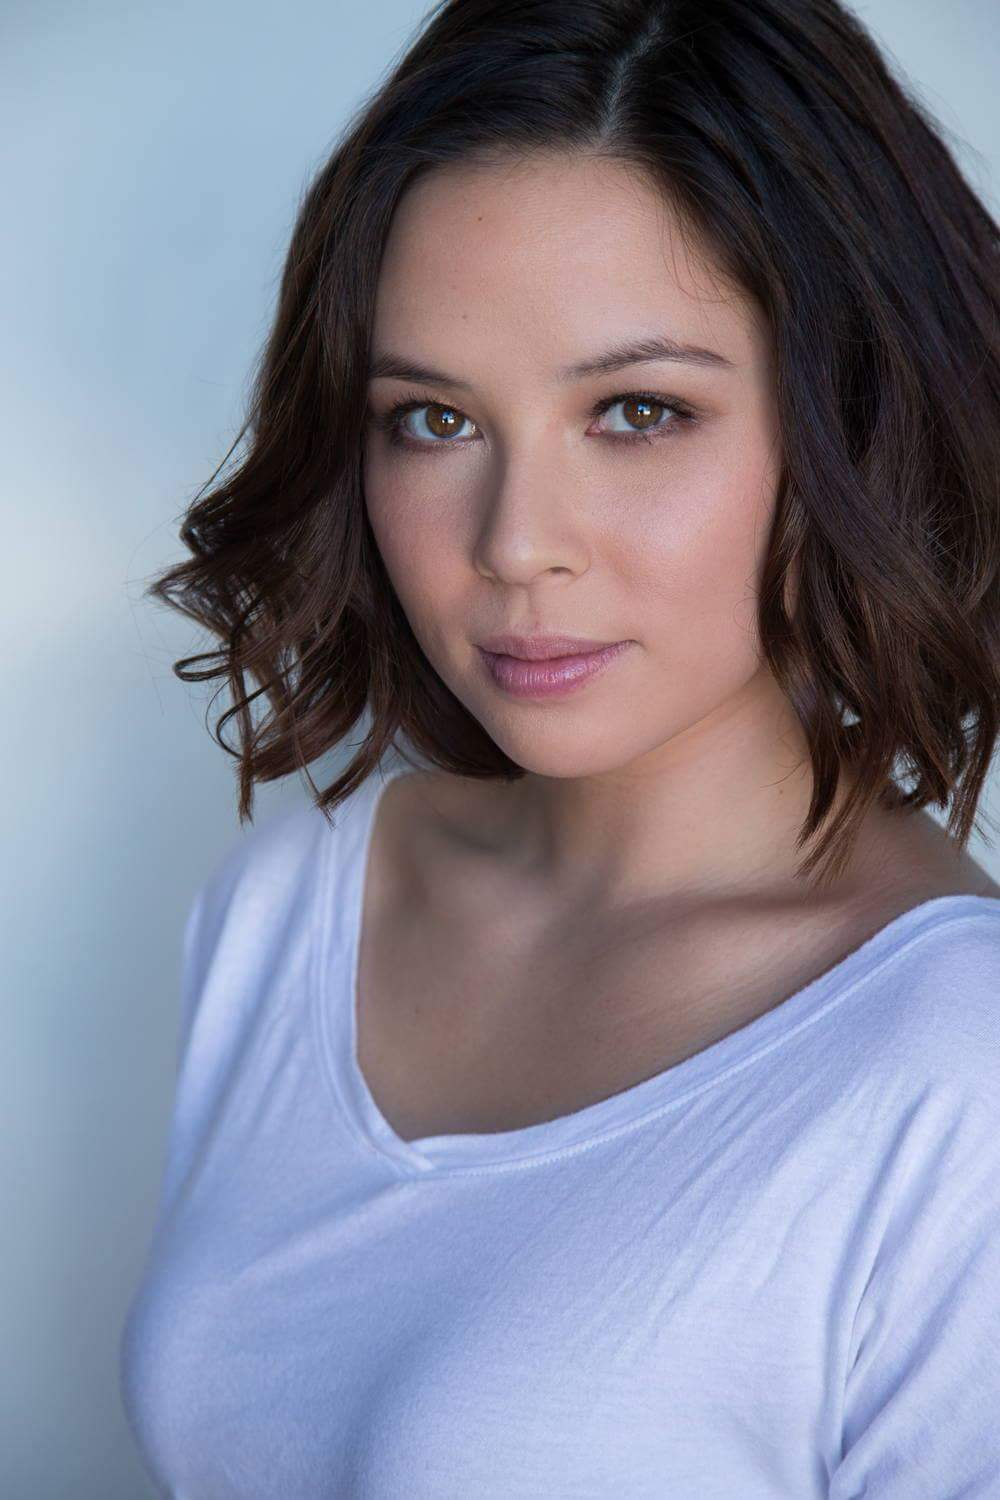 Malese Jow Malese Jow new pictures